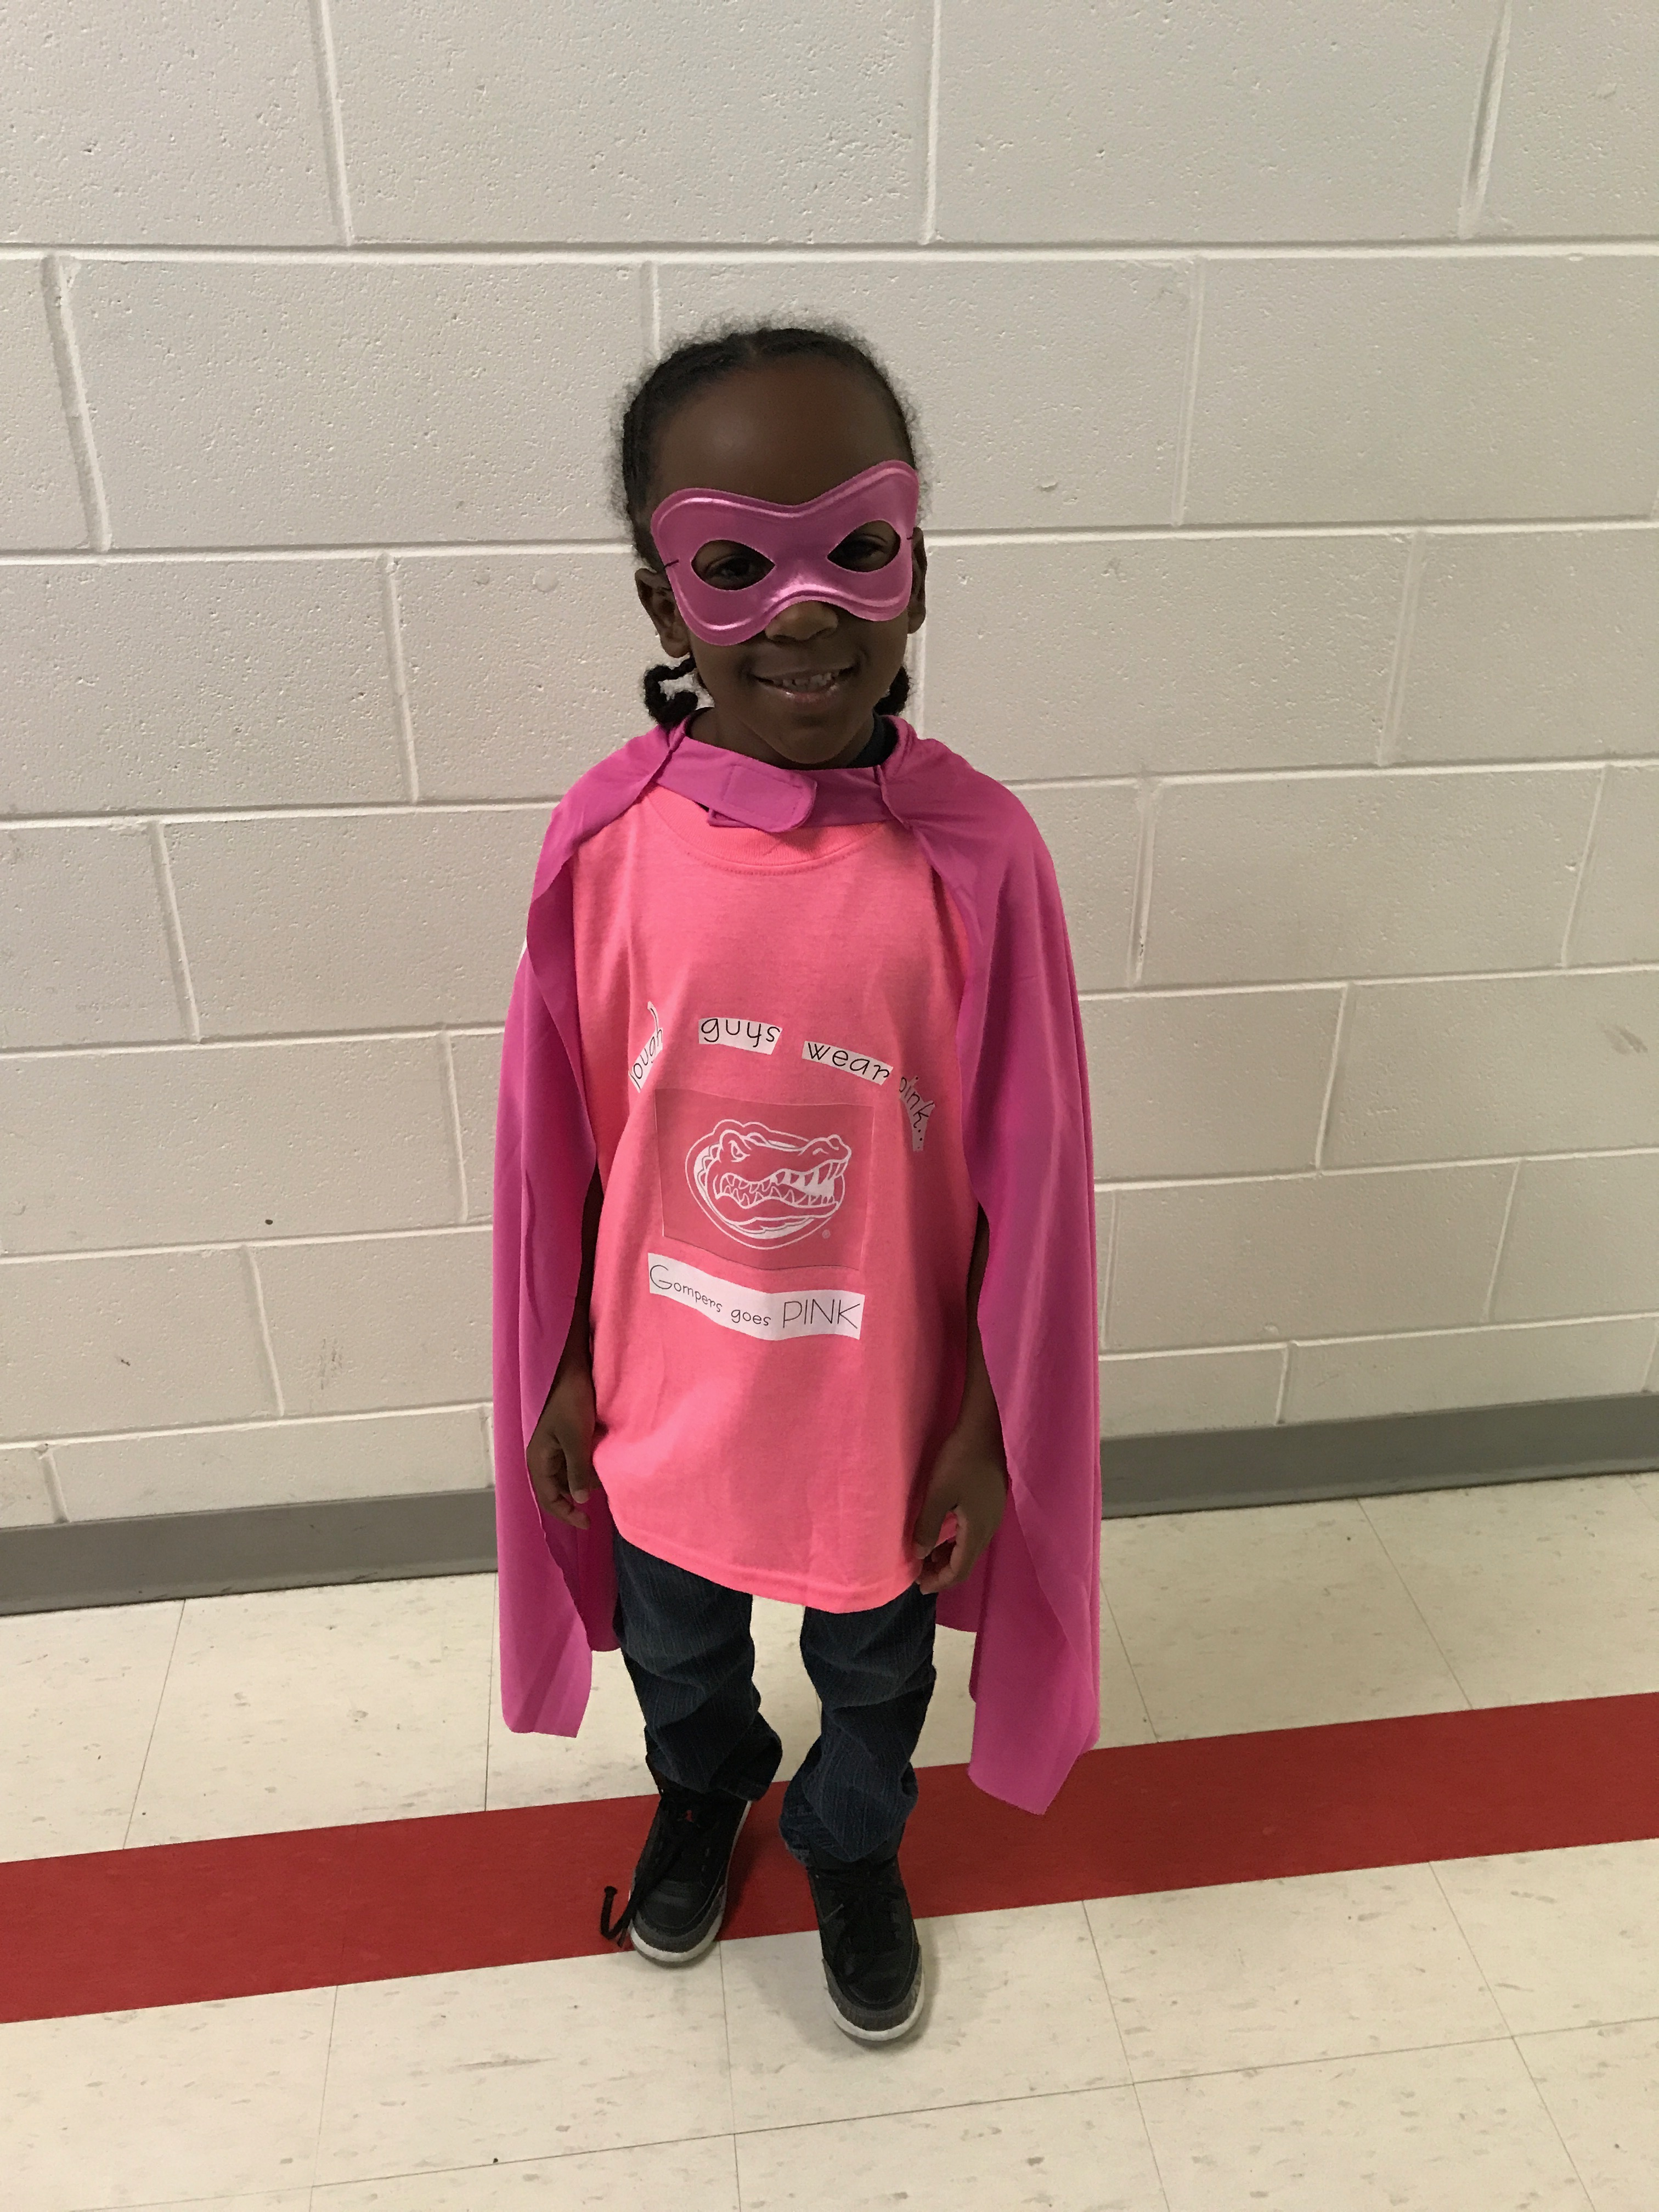 Student dressed in pink on Pink Day.